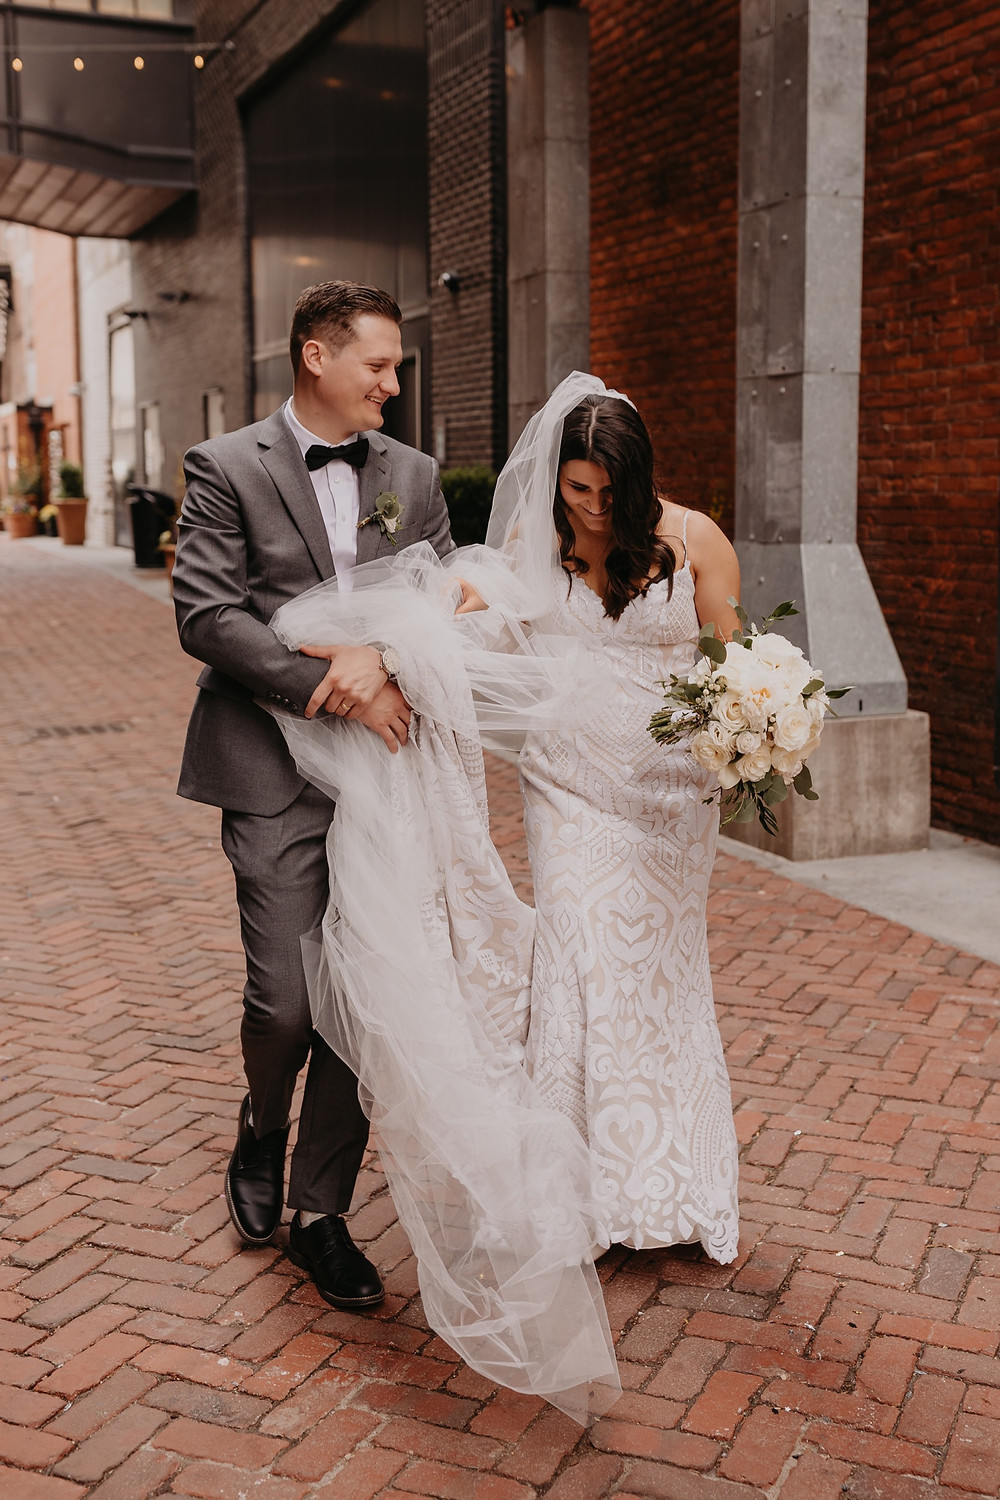 Groom helping hold brides dress and veil in Shinola Alley. Photographed by Nicole Leanne Photography.